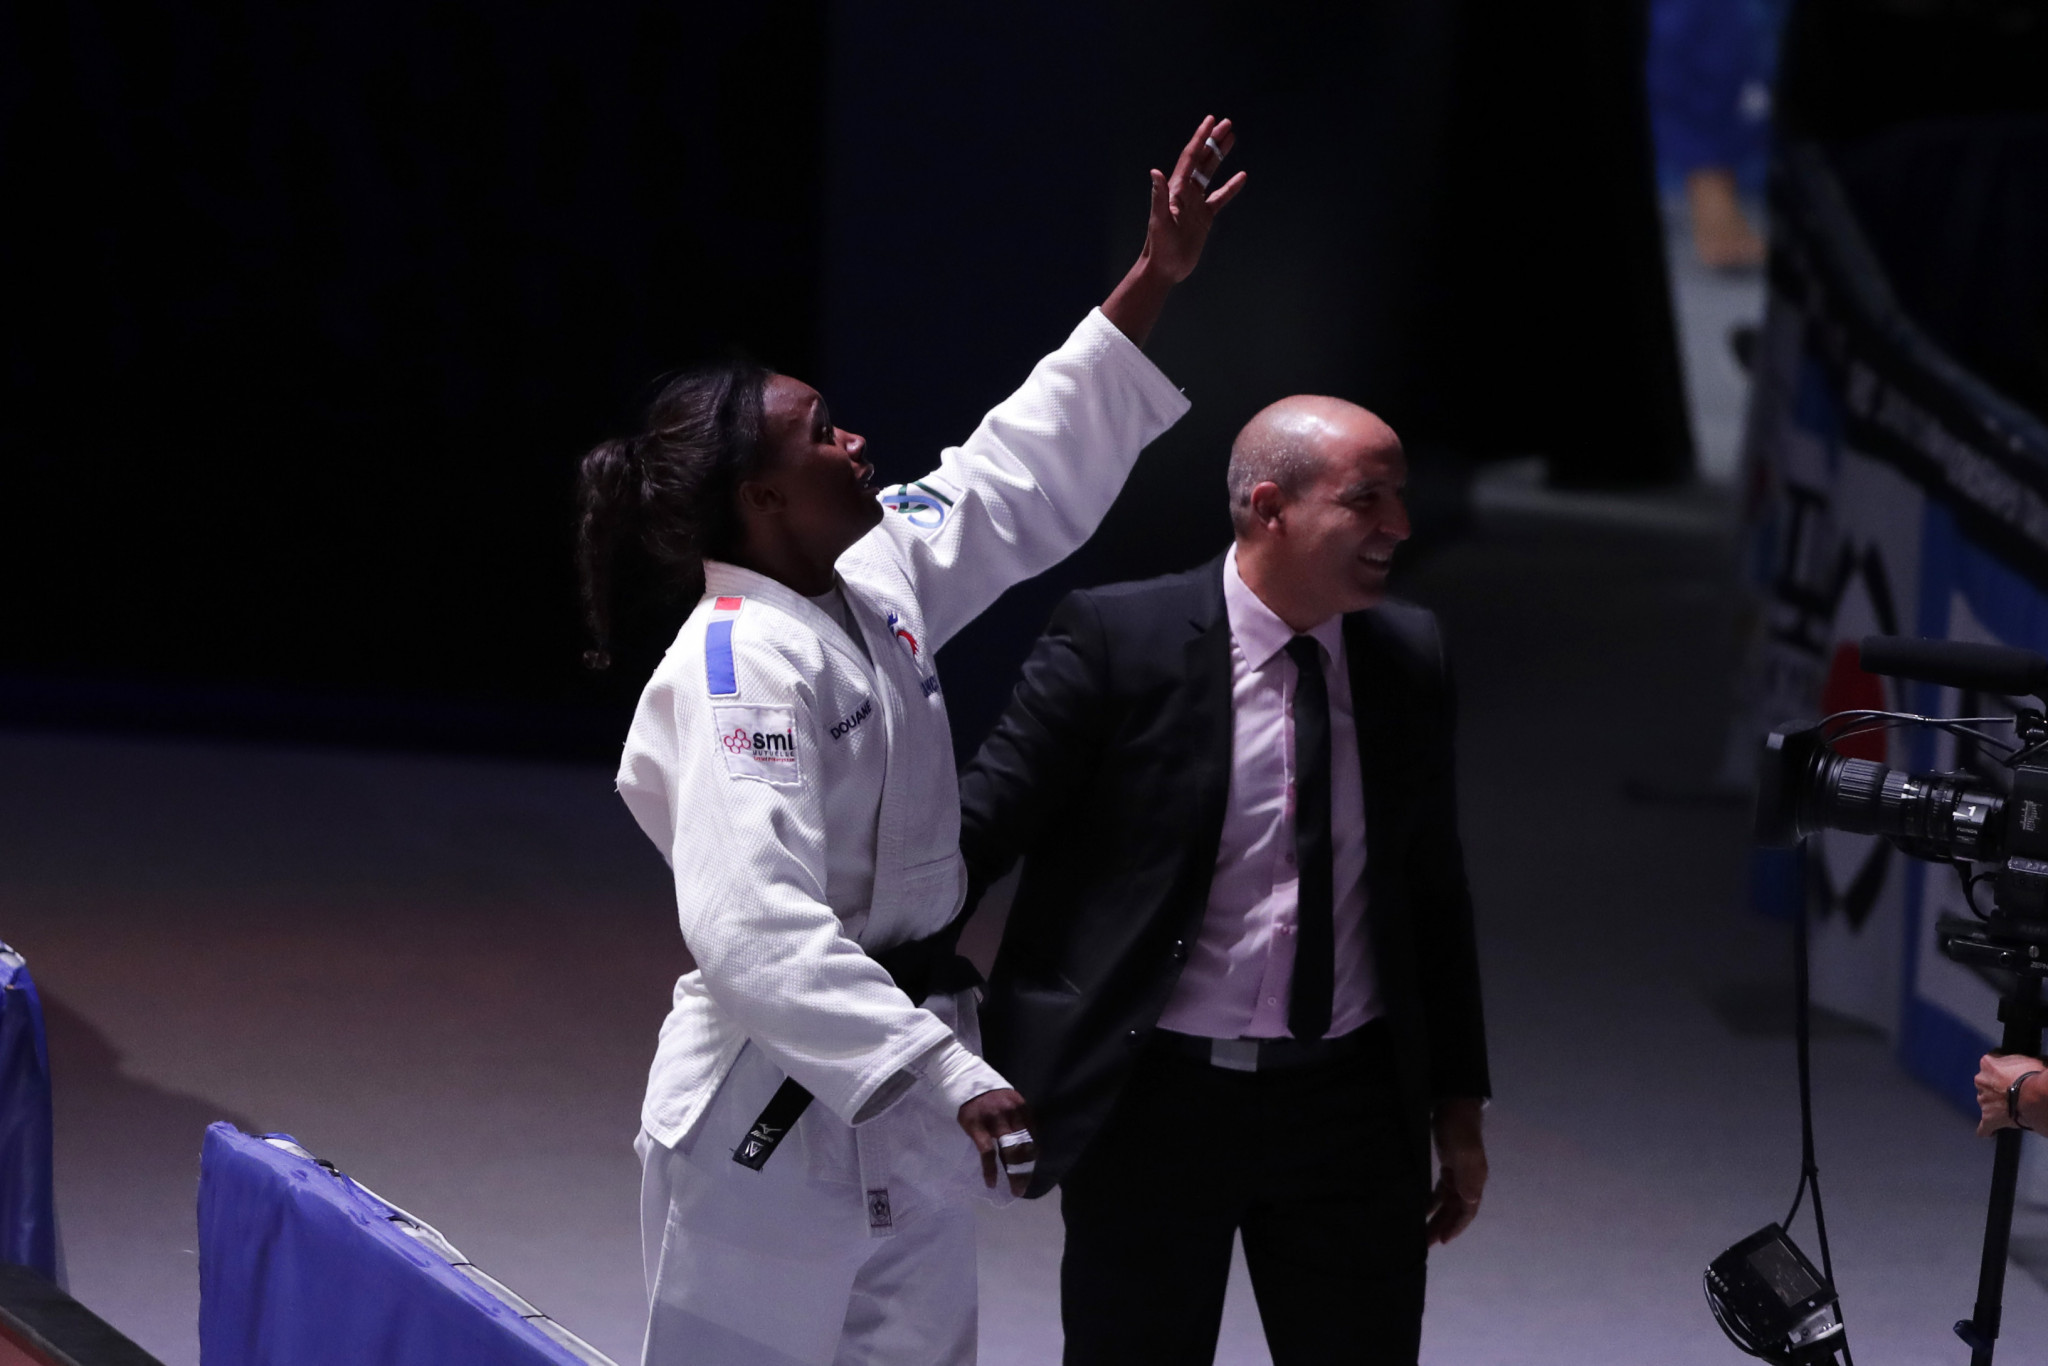 Malonga waves to the crowd after sealing France's third gold of these Championships ©Getty Images